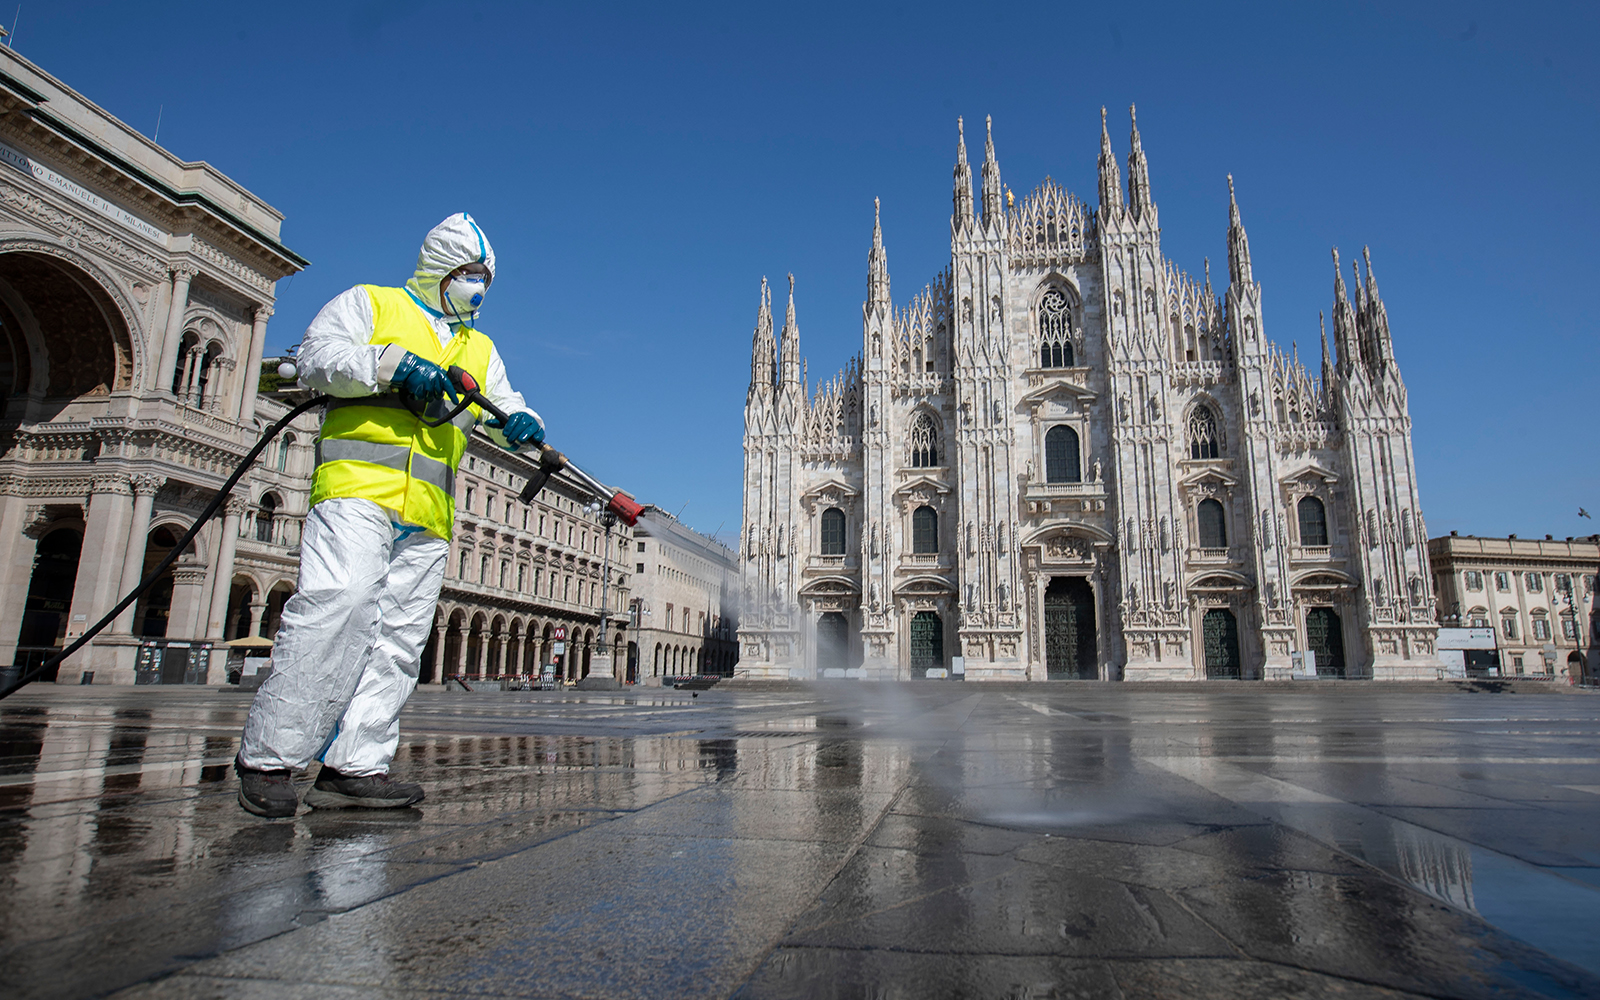 Scientists In Italy Find Coronavirus On Air Pollution Particles The Times Of Israel